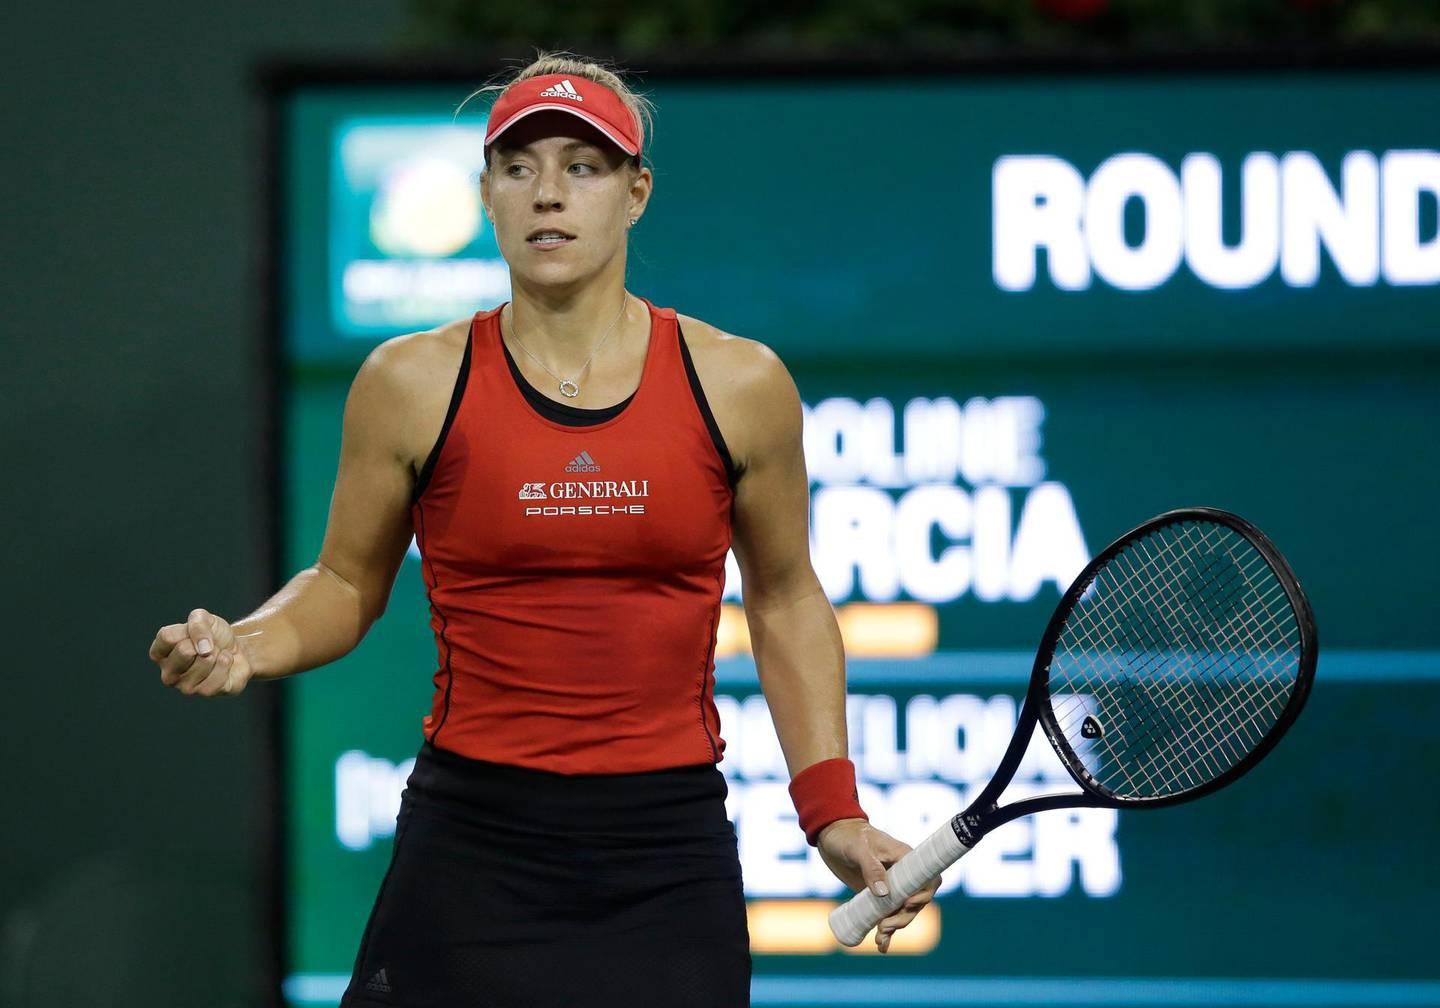 epa06602236 Angelique Kerber of Germany in action against Caroline Garcia of France during the BNP Paribas Open tennis tournament at the Indian Wells Tennis Garden in Indian Wells, California, USA, 13 March 2018.  EPA/PAUL BUCK